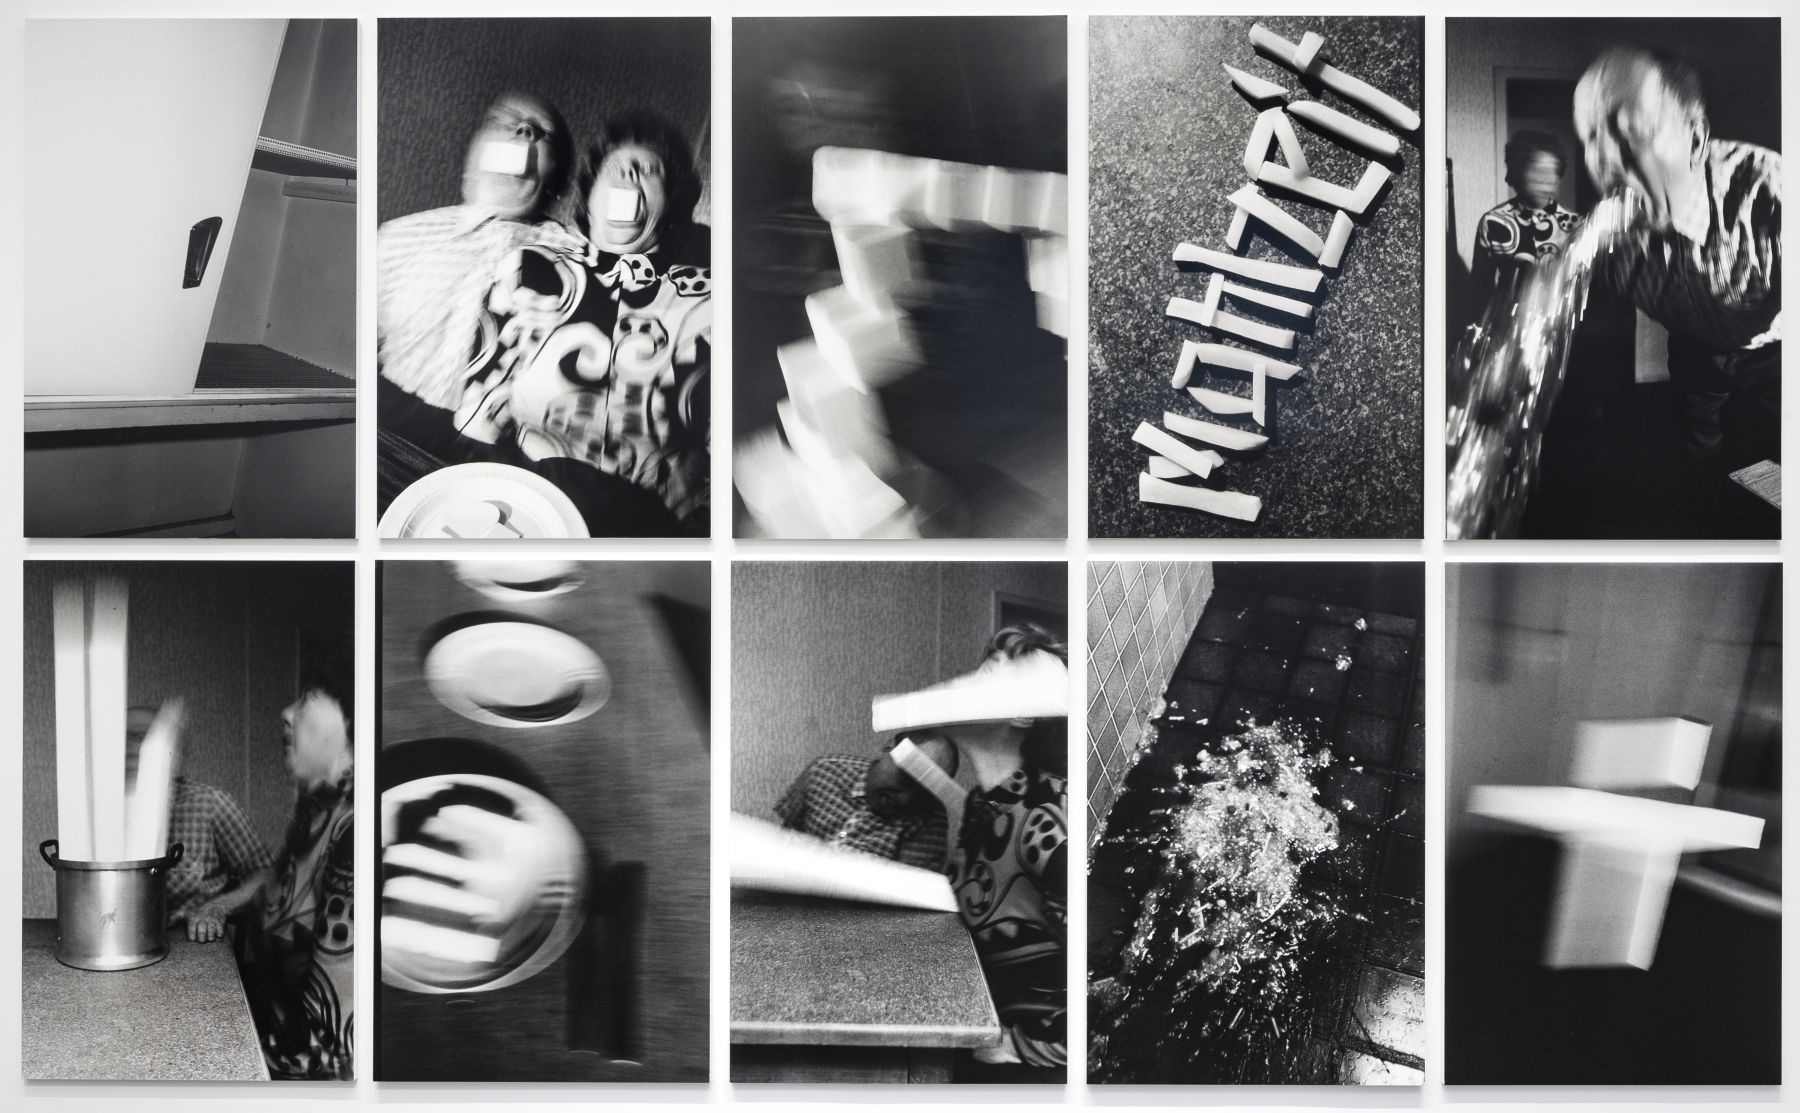 Mahlzeit 1989 10 vintage gelatin silver prints mounted on foam core and Plexiglas